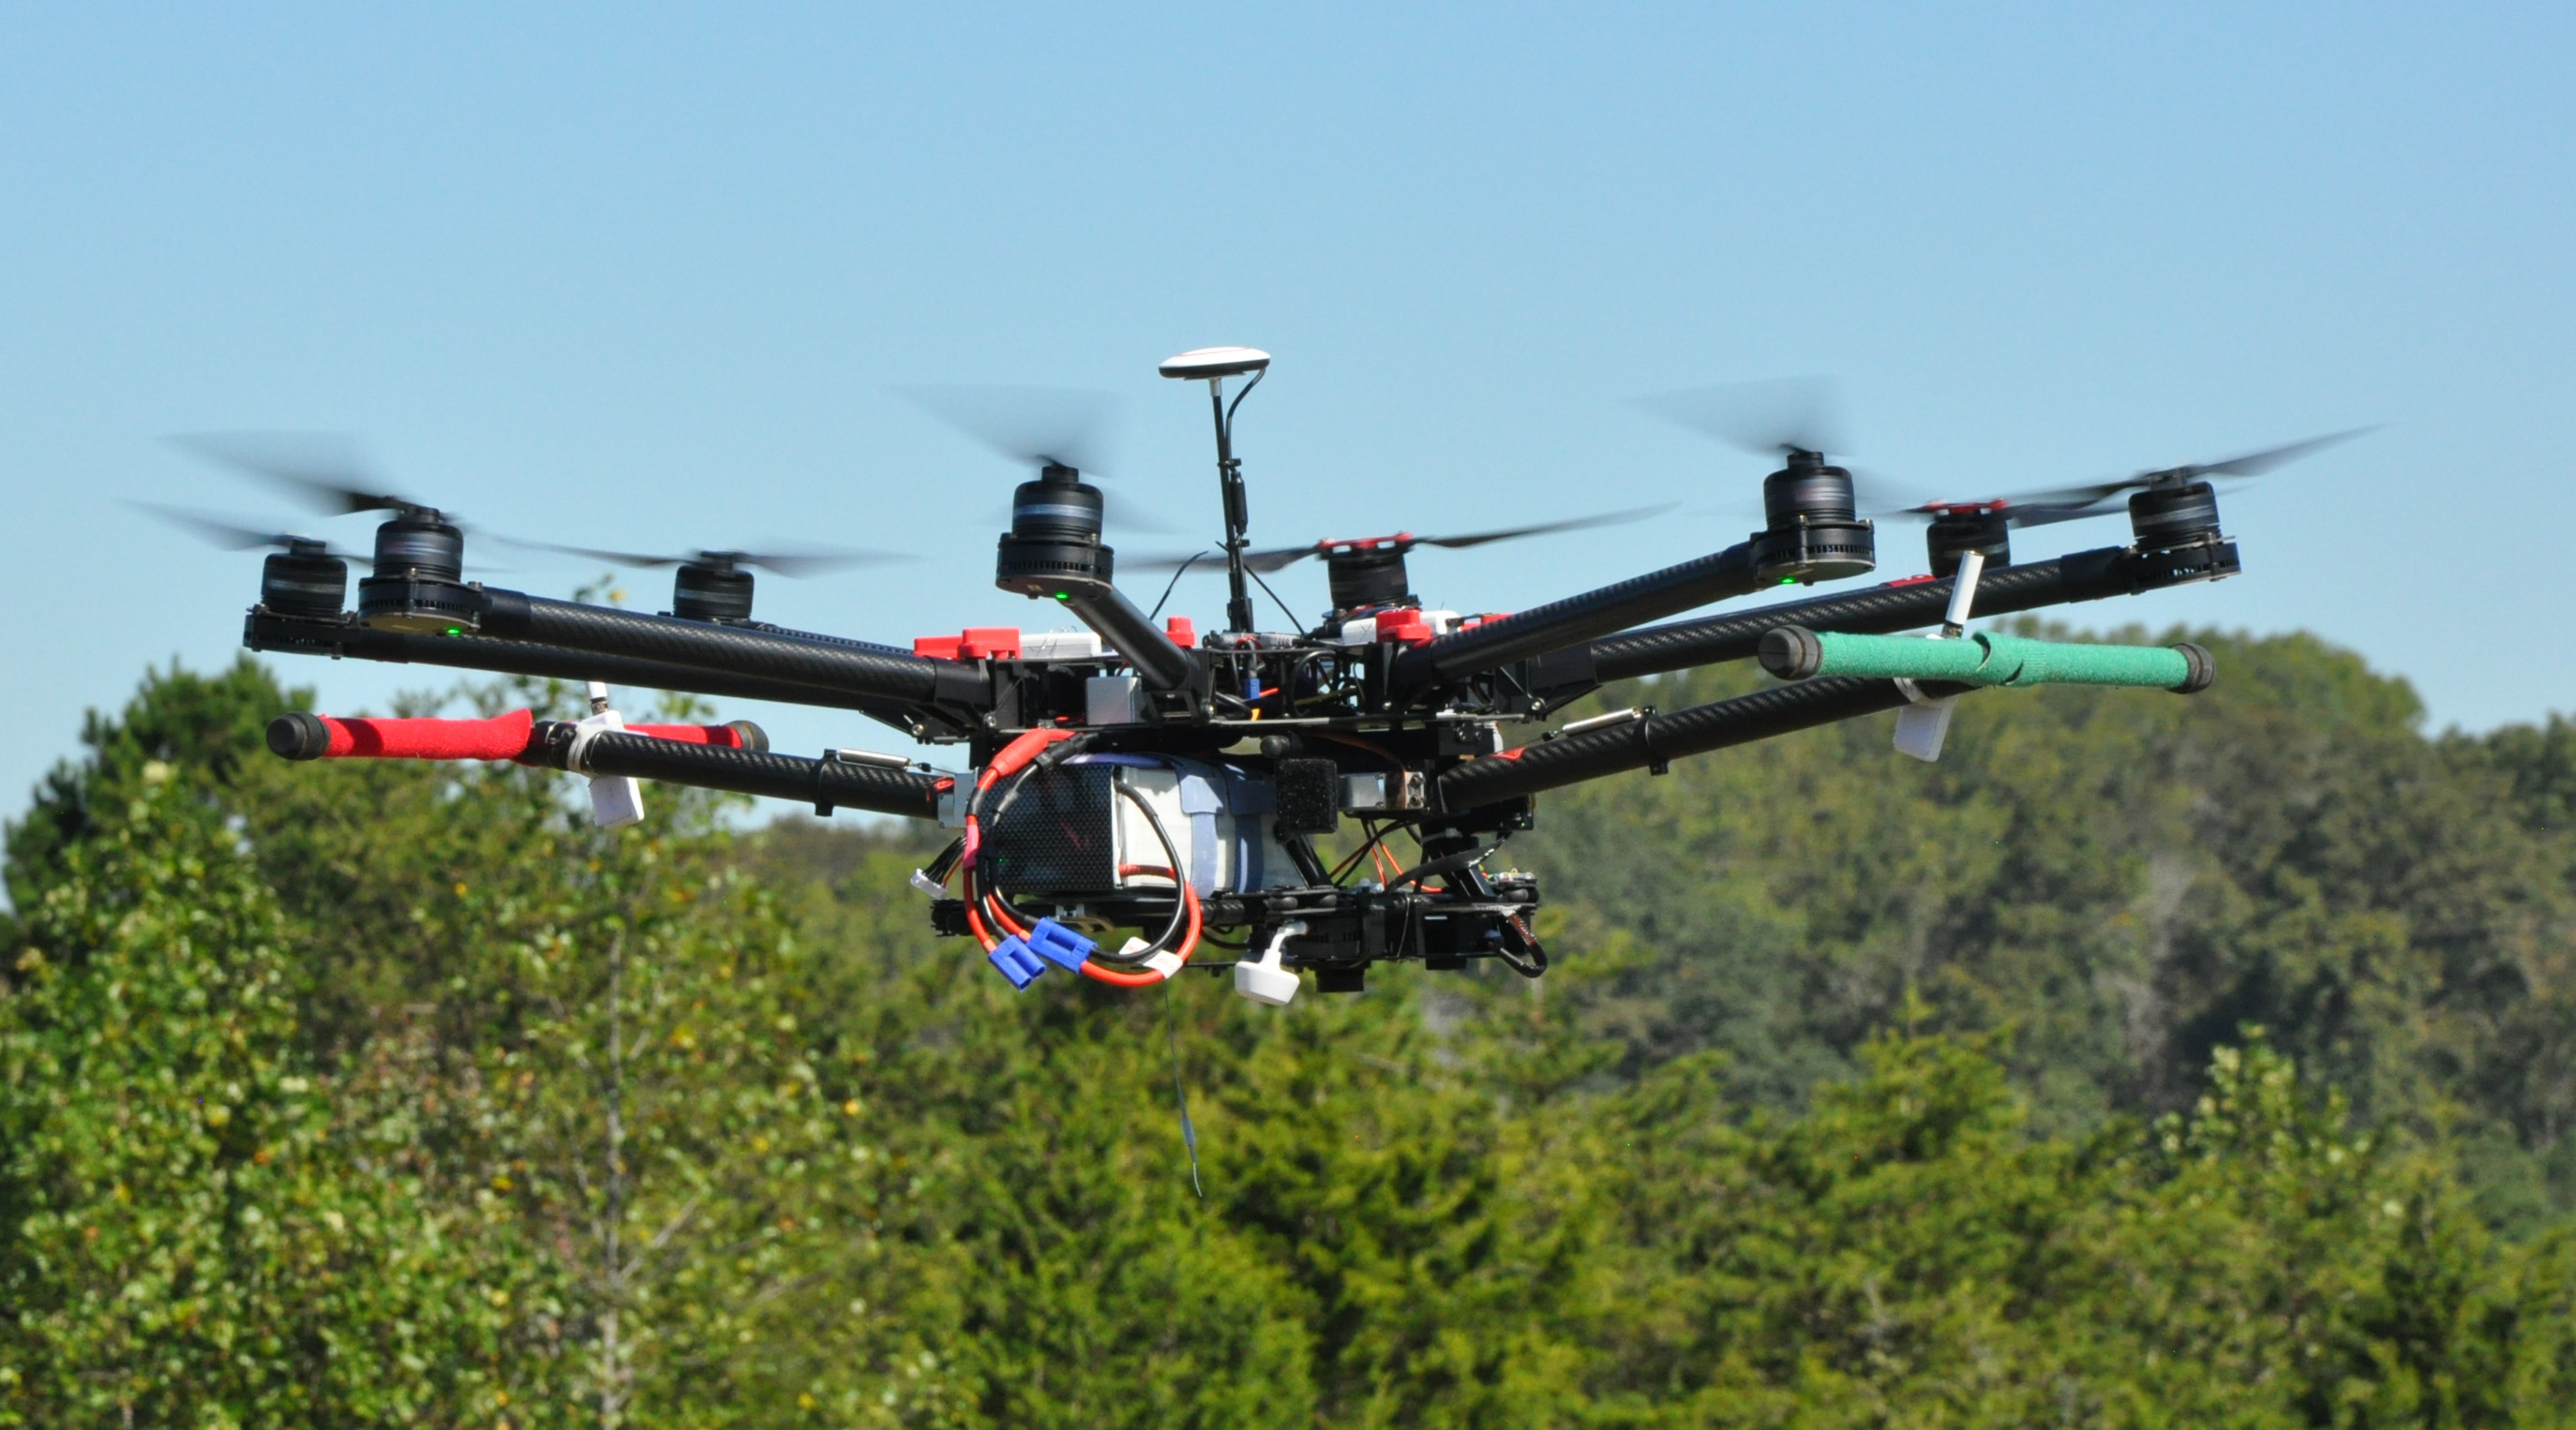 In-flight photo of an octocopter